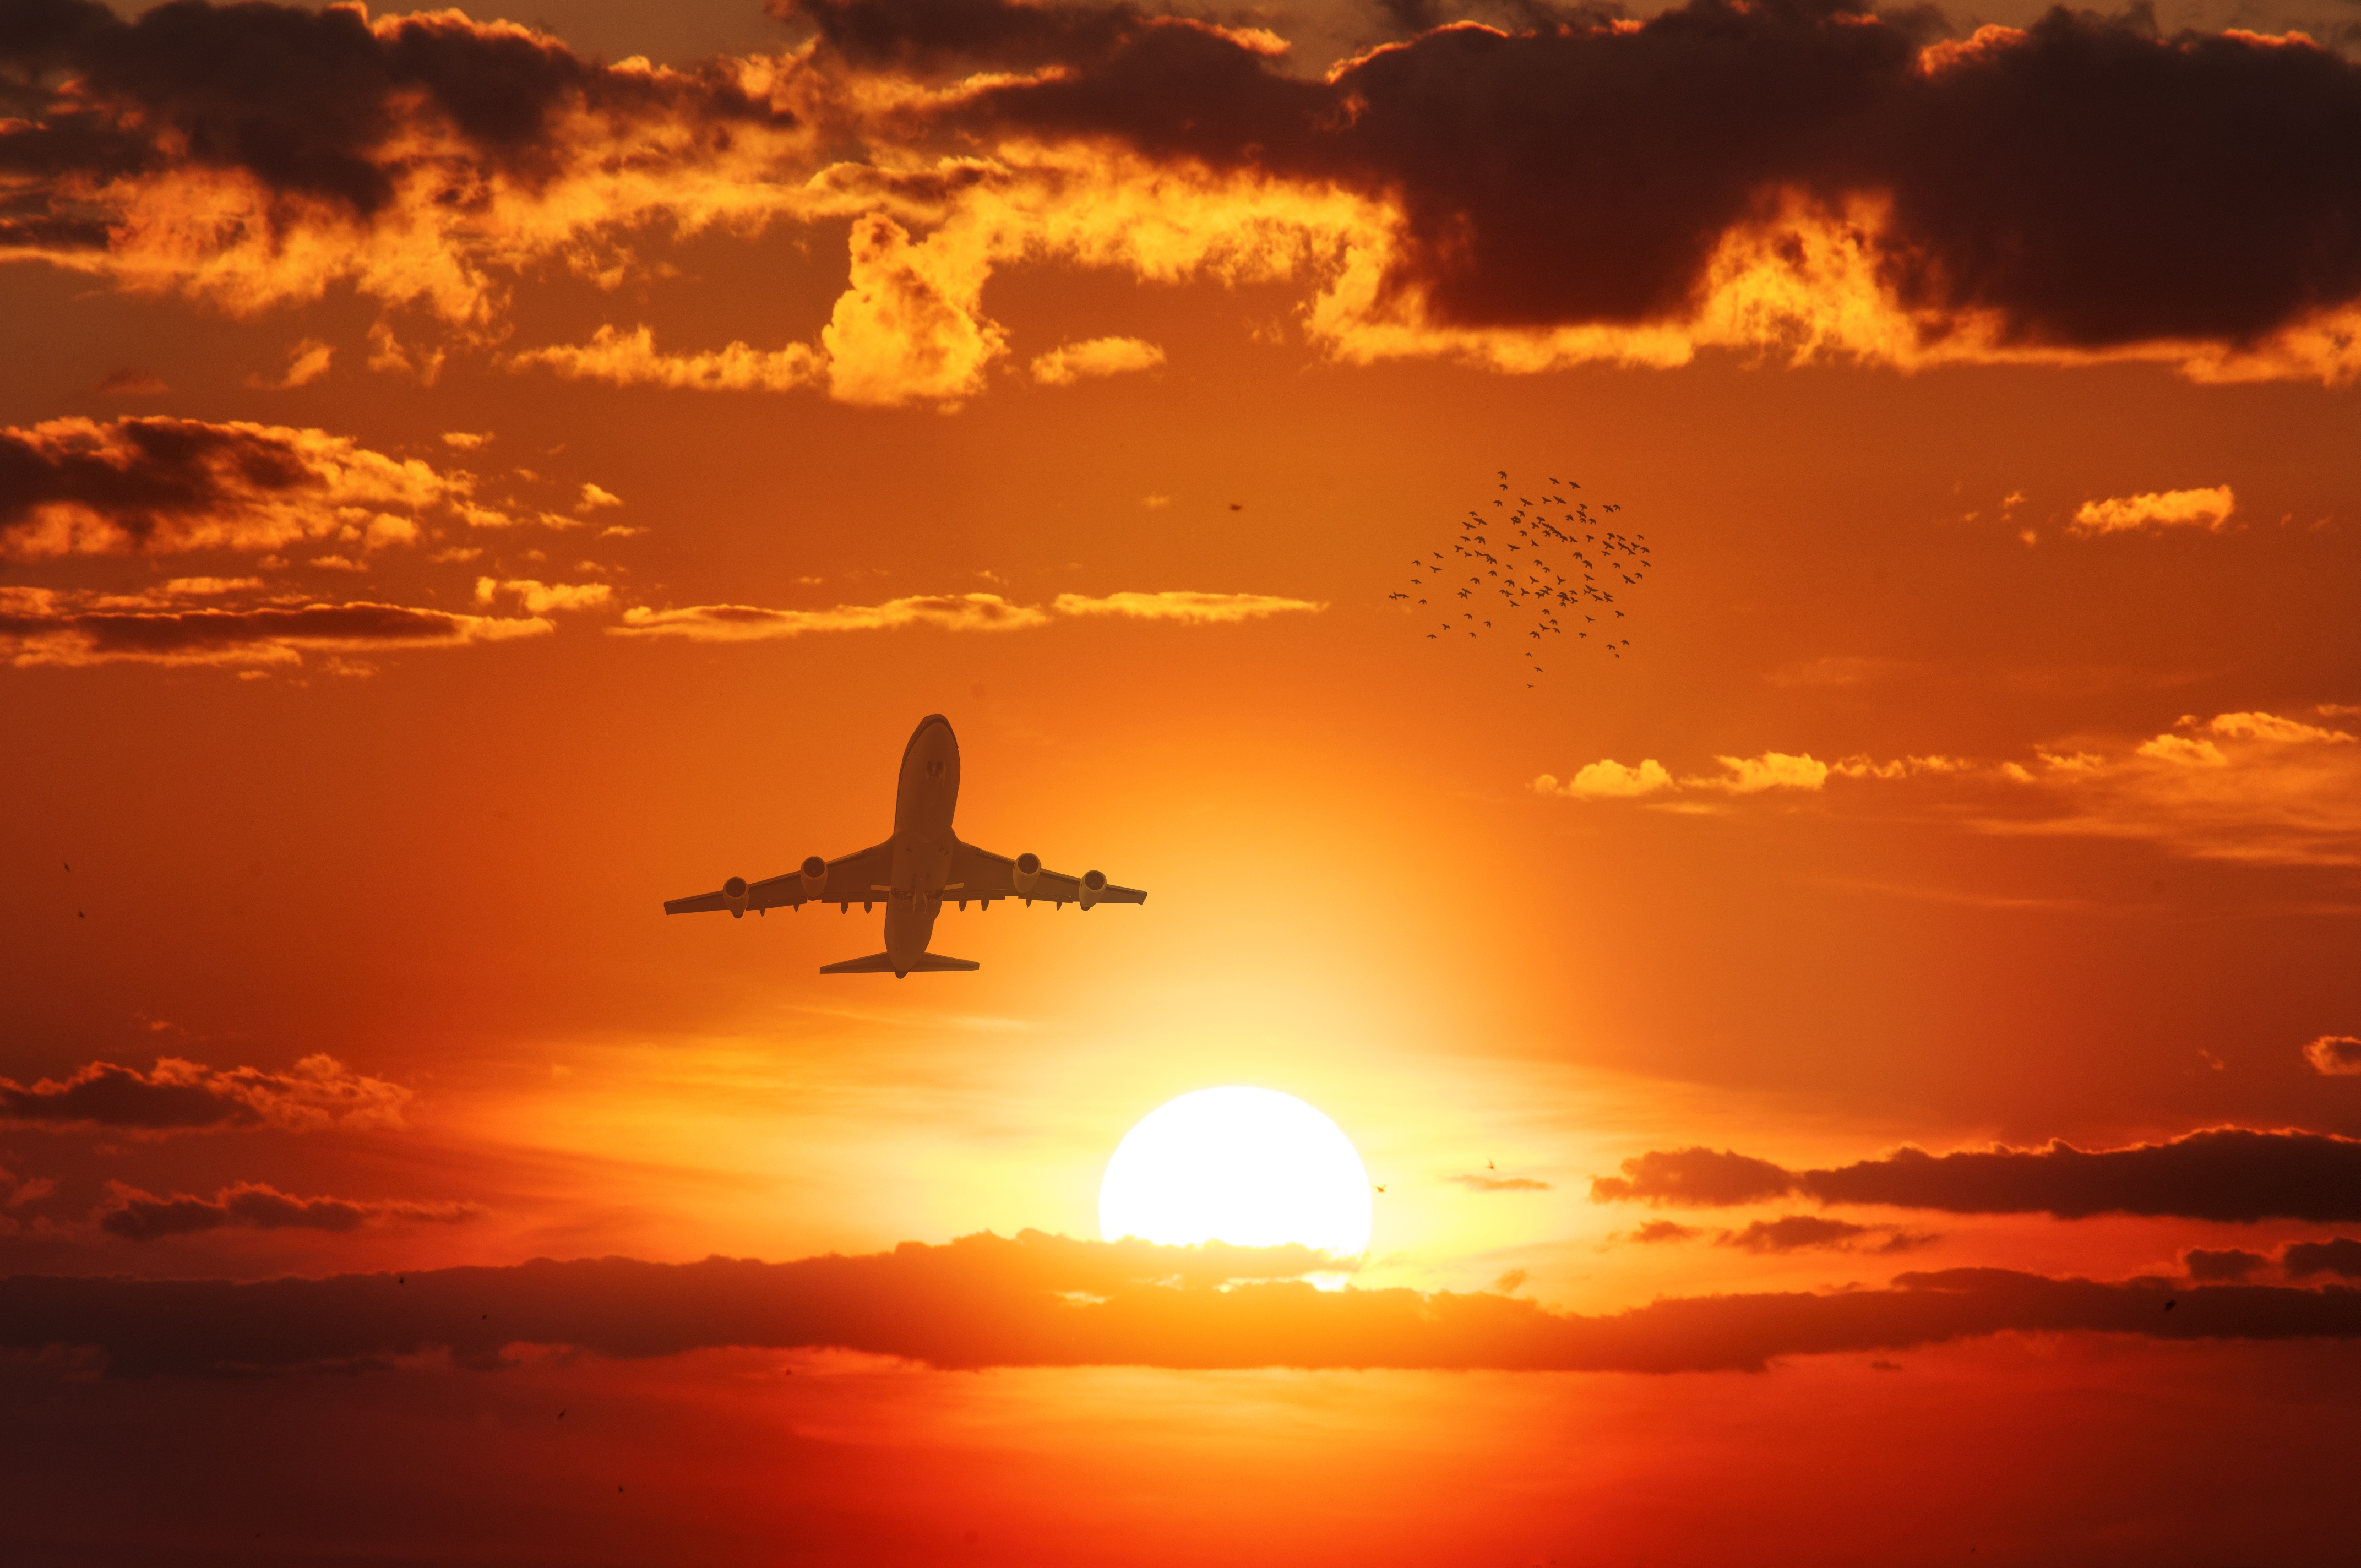 157973 Screensavers and Wallpapers Birds for phone. Download Miscellanea, Miscellaneous, Plane, Airplane, Flight, Sunset, Sky, Sun, Birds pictures for free